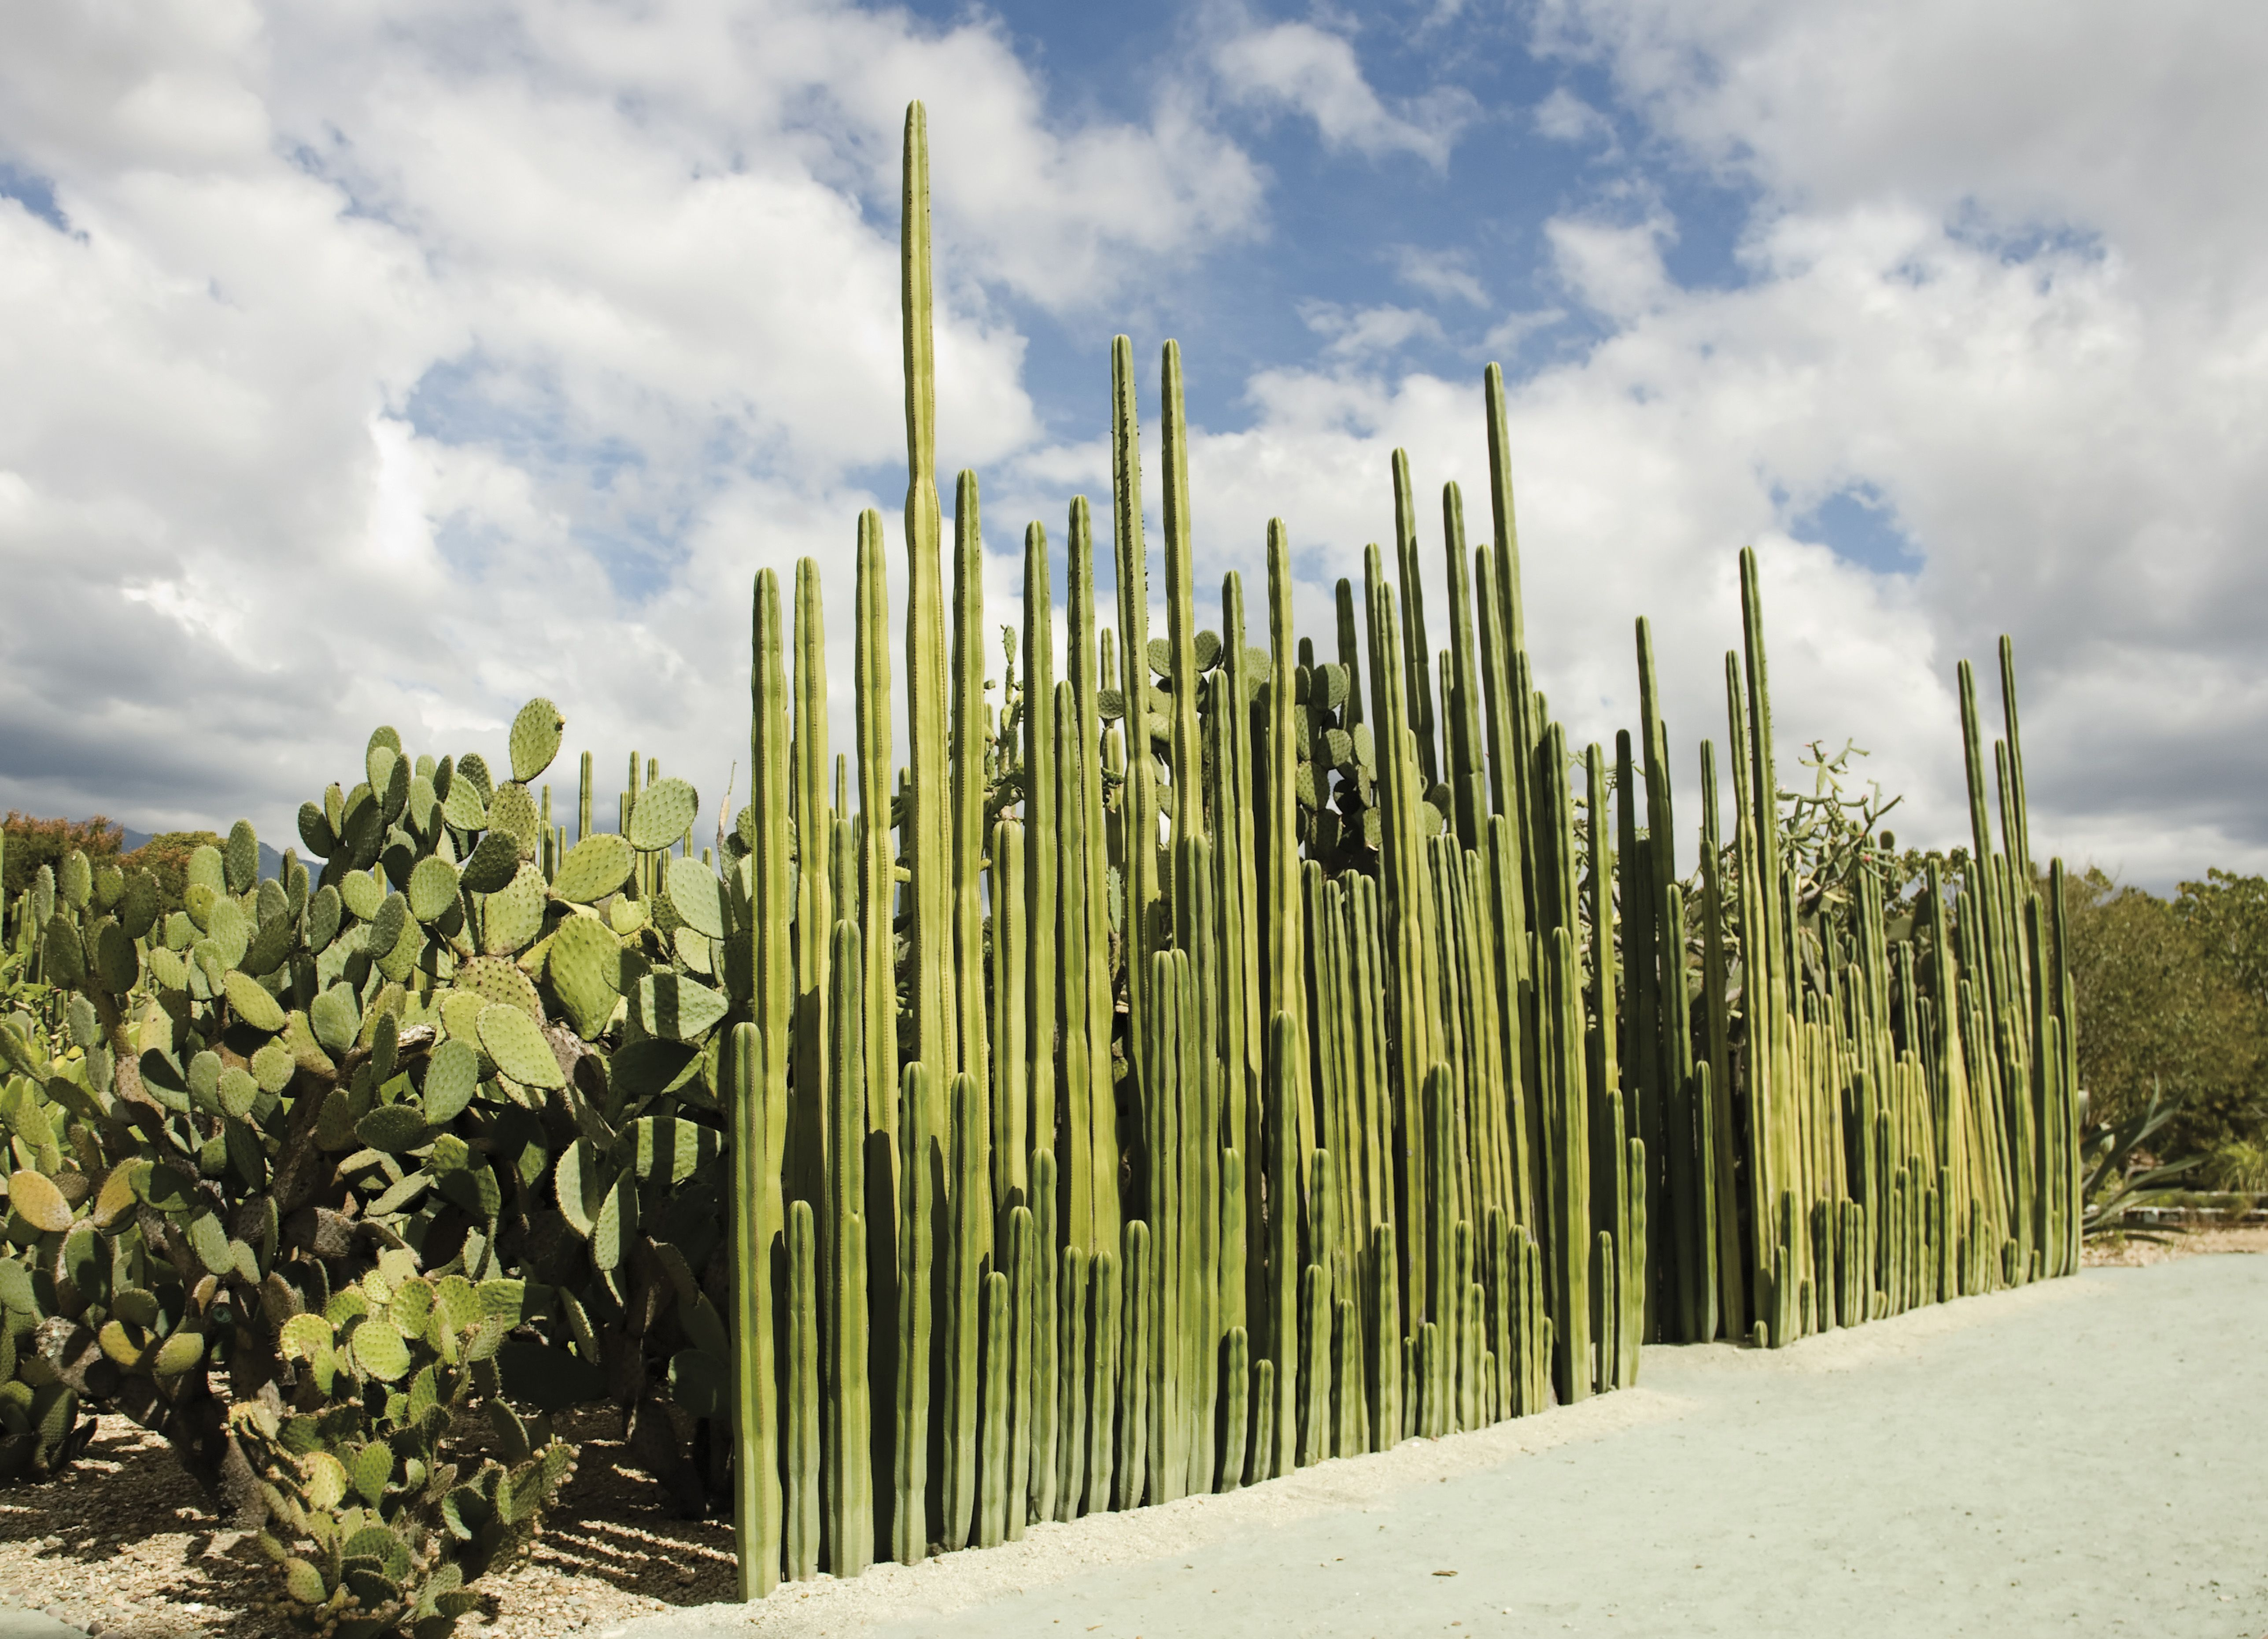 Mexican fence post cactus